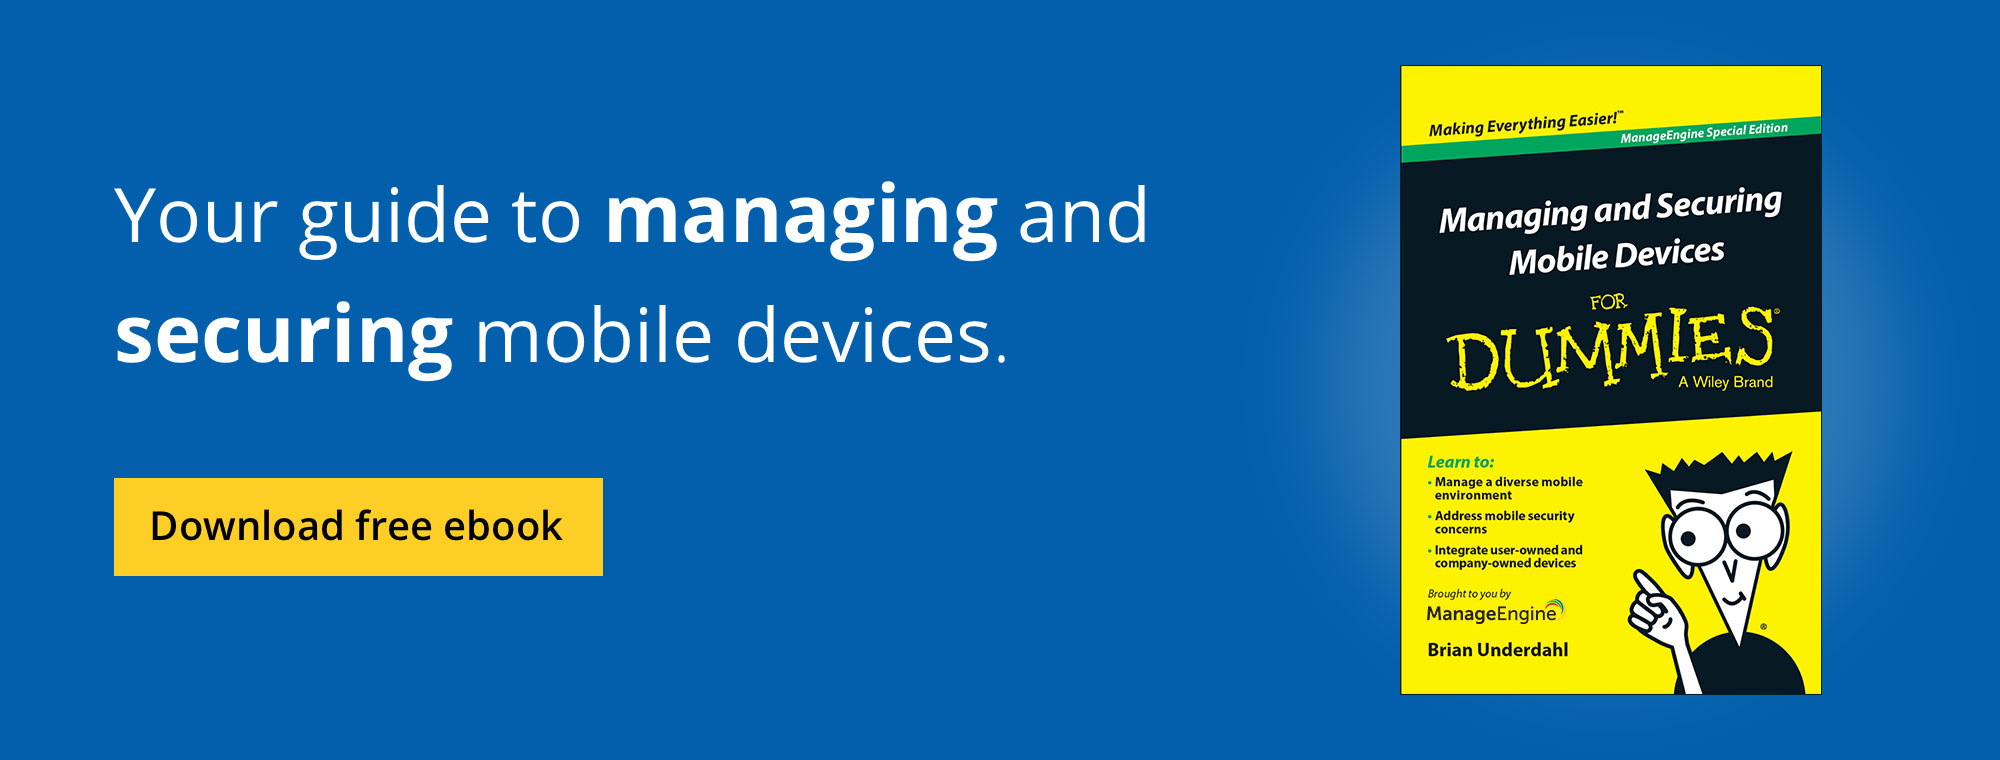 Free e-book on managing and securing mobile devices for Dummies.